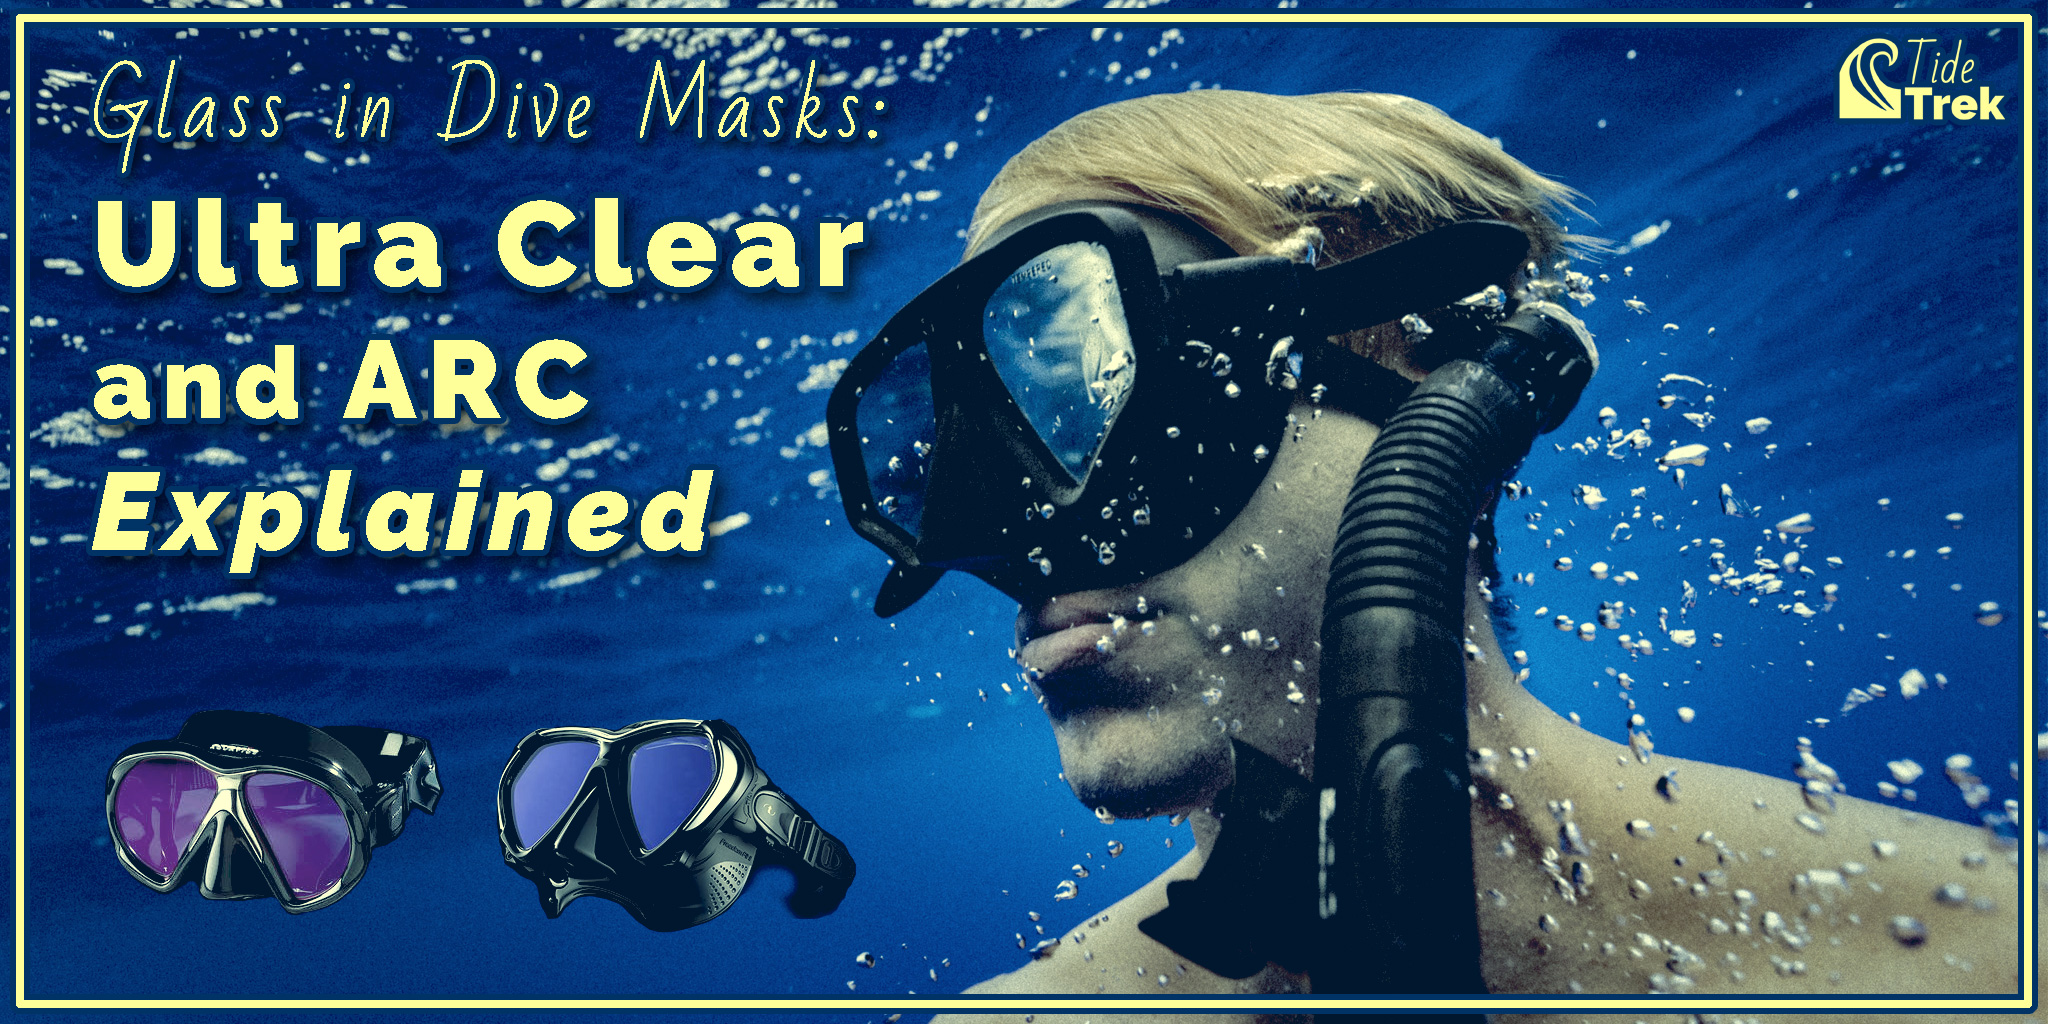 Glass in dive masks: Ultra clear and ARC explained